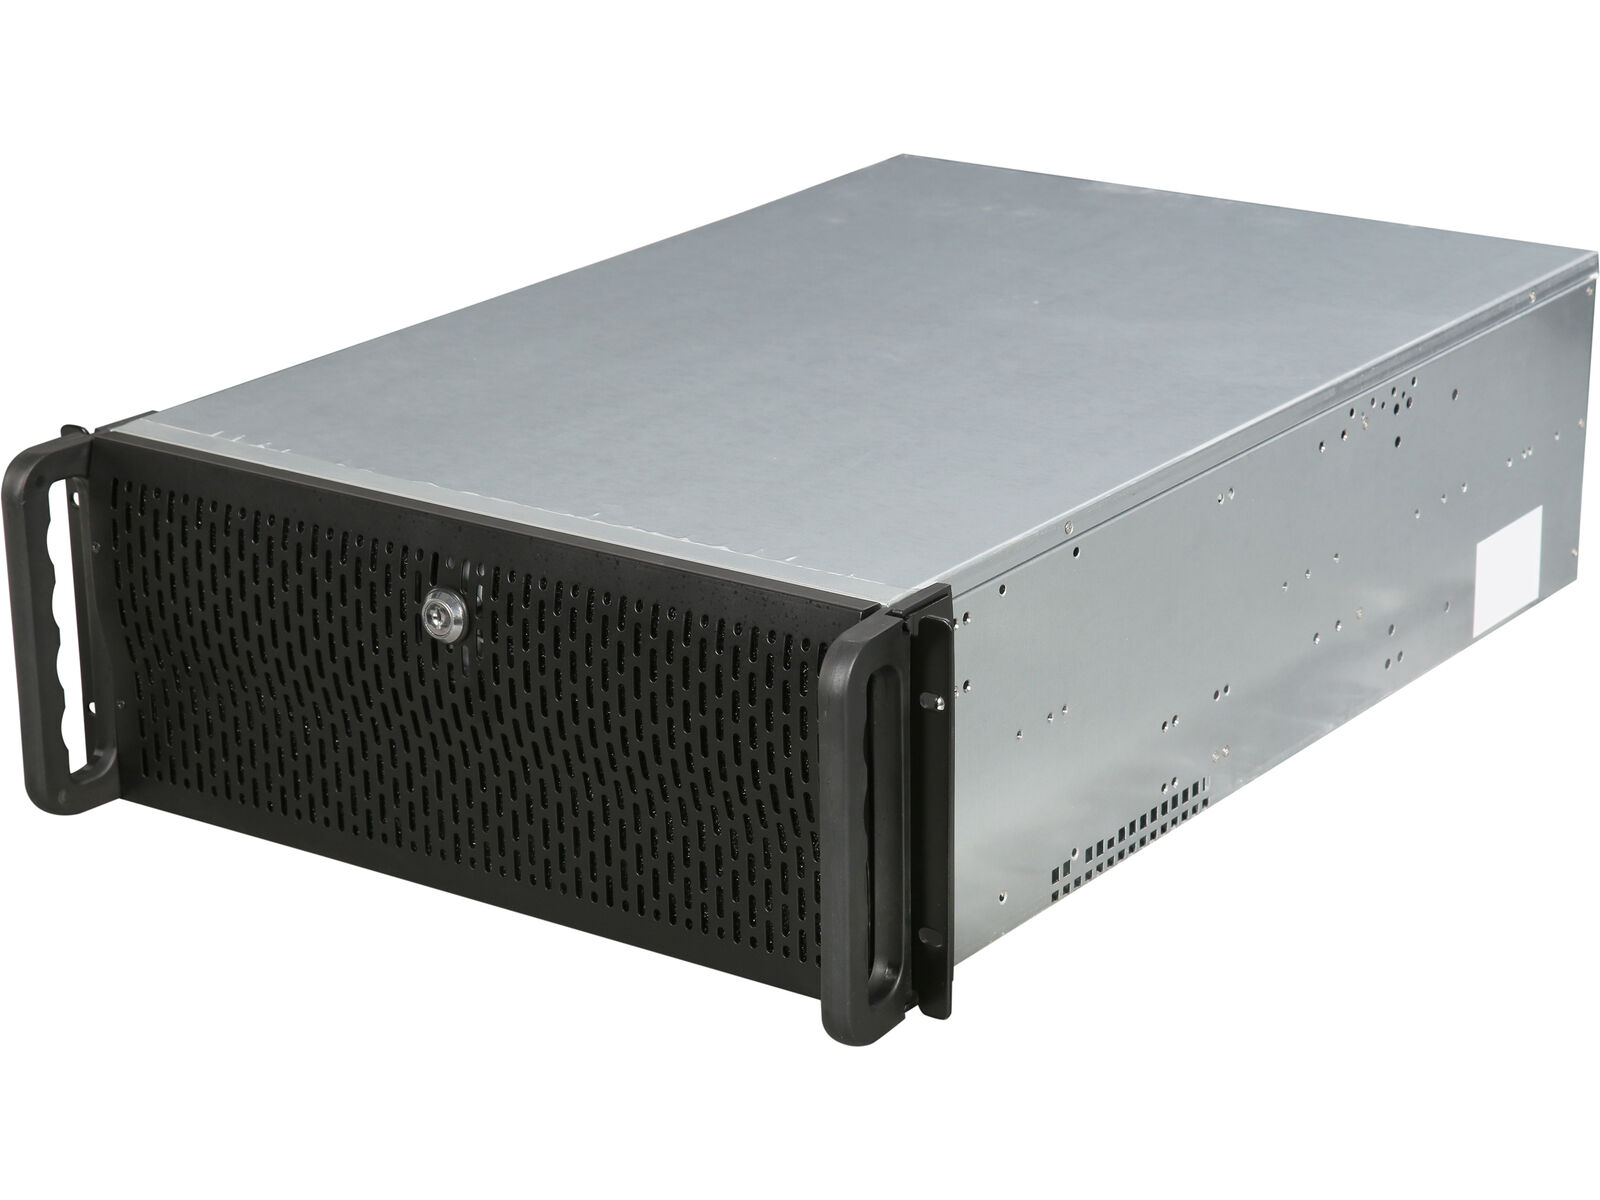 Rosewill Rsv-l4000c 4u Rackmount Server Case/chassis For ...